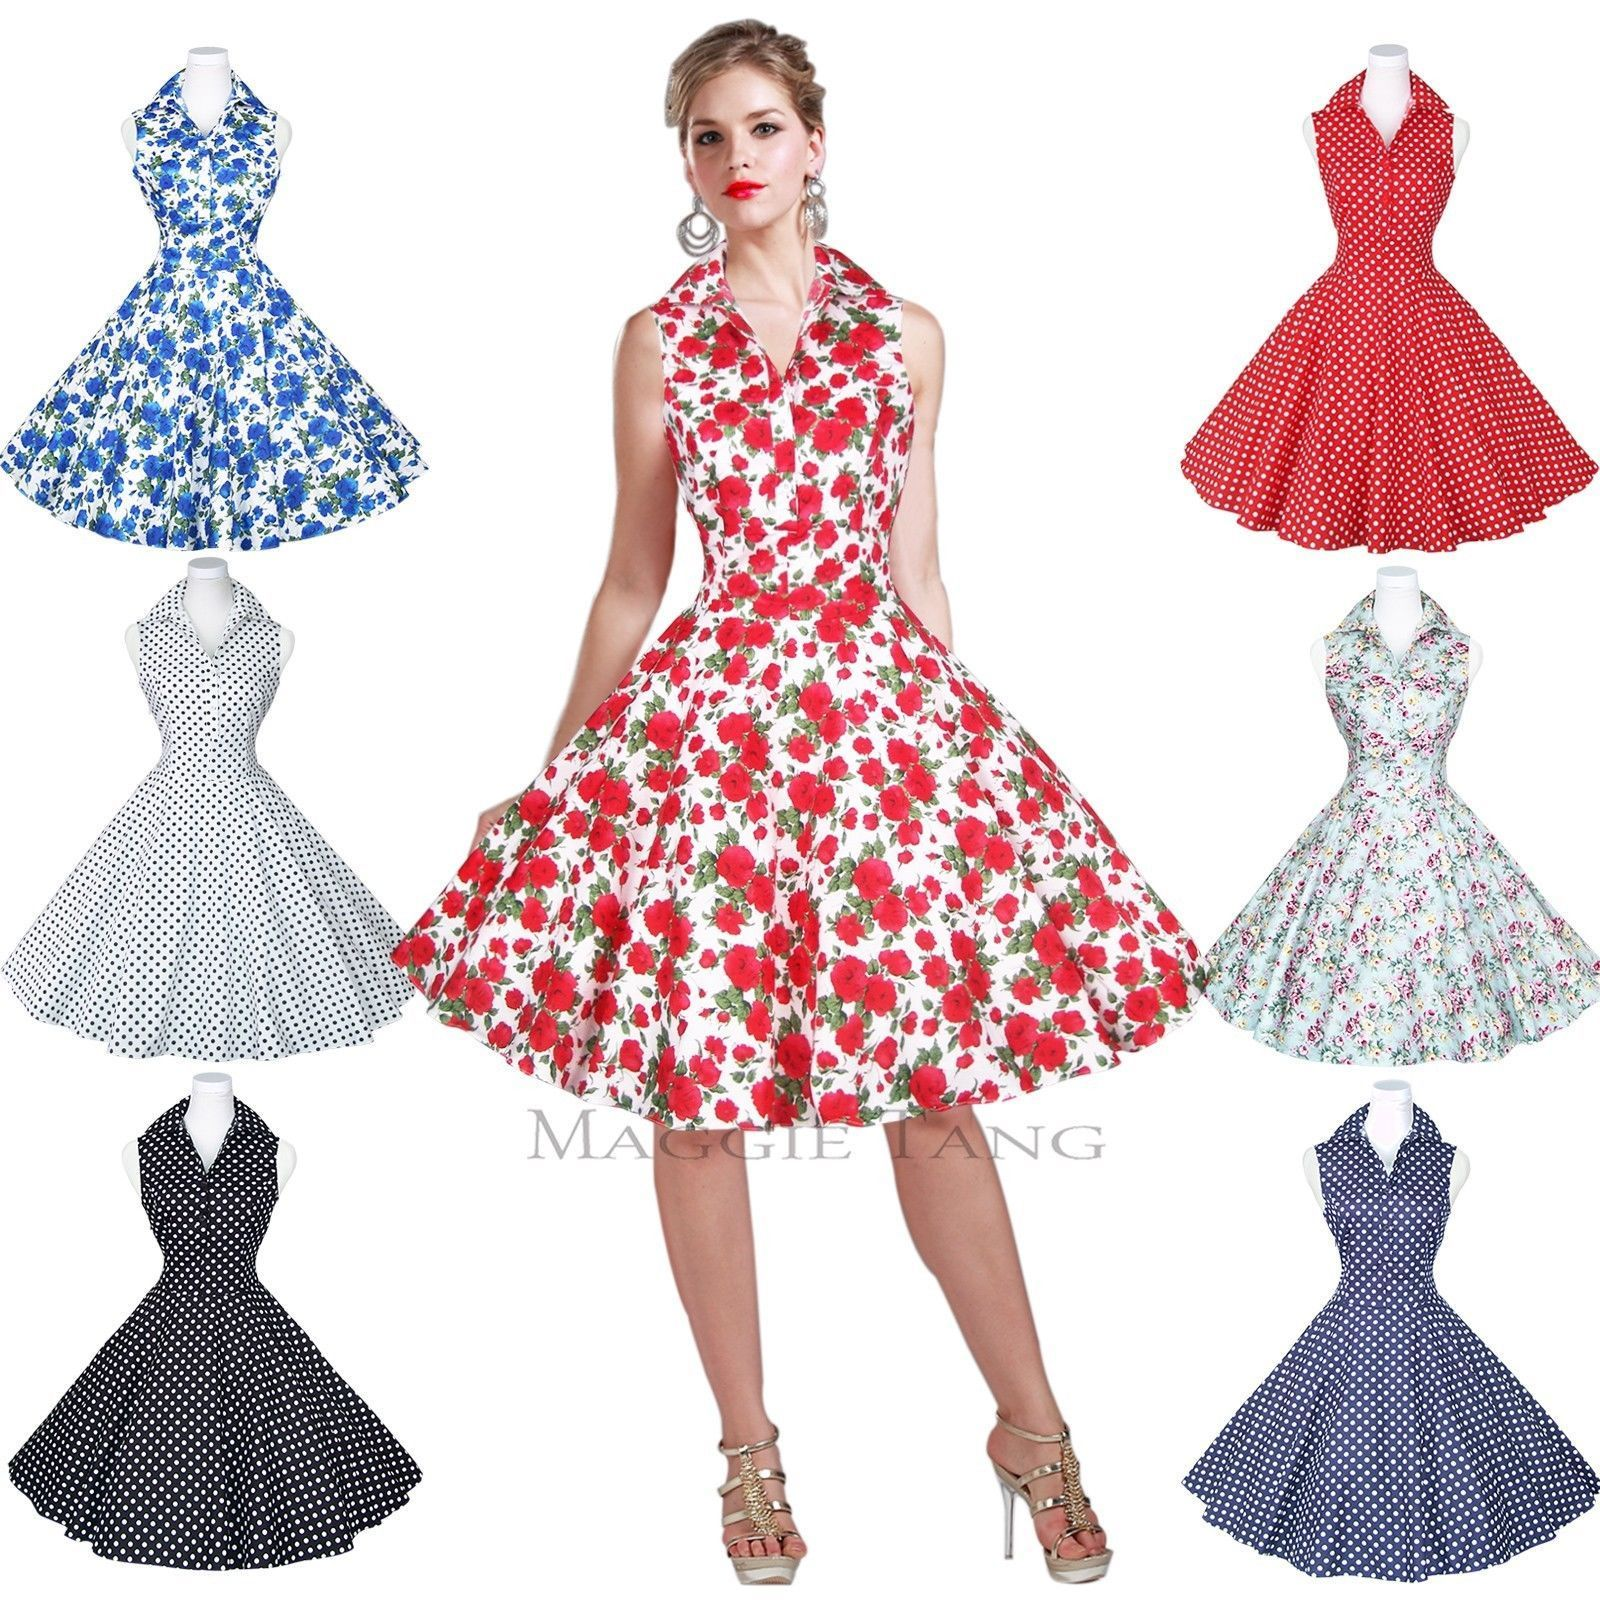 Maggie Tang 50s 60s Pin up Vintage Dancing Swing Jive Rockabilly ...